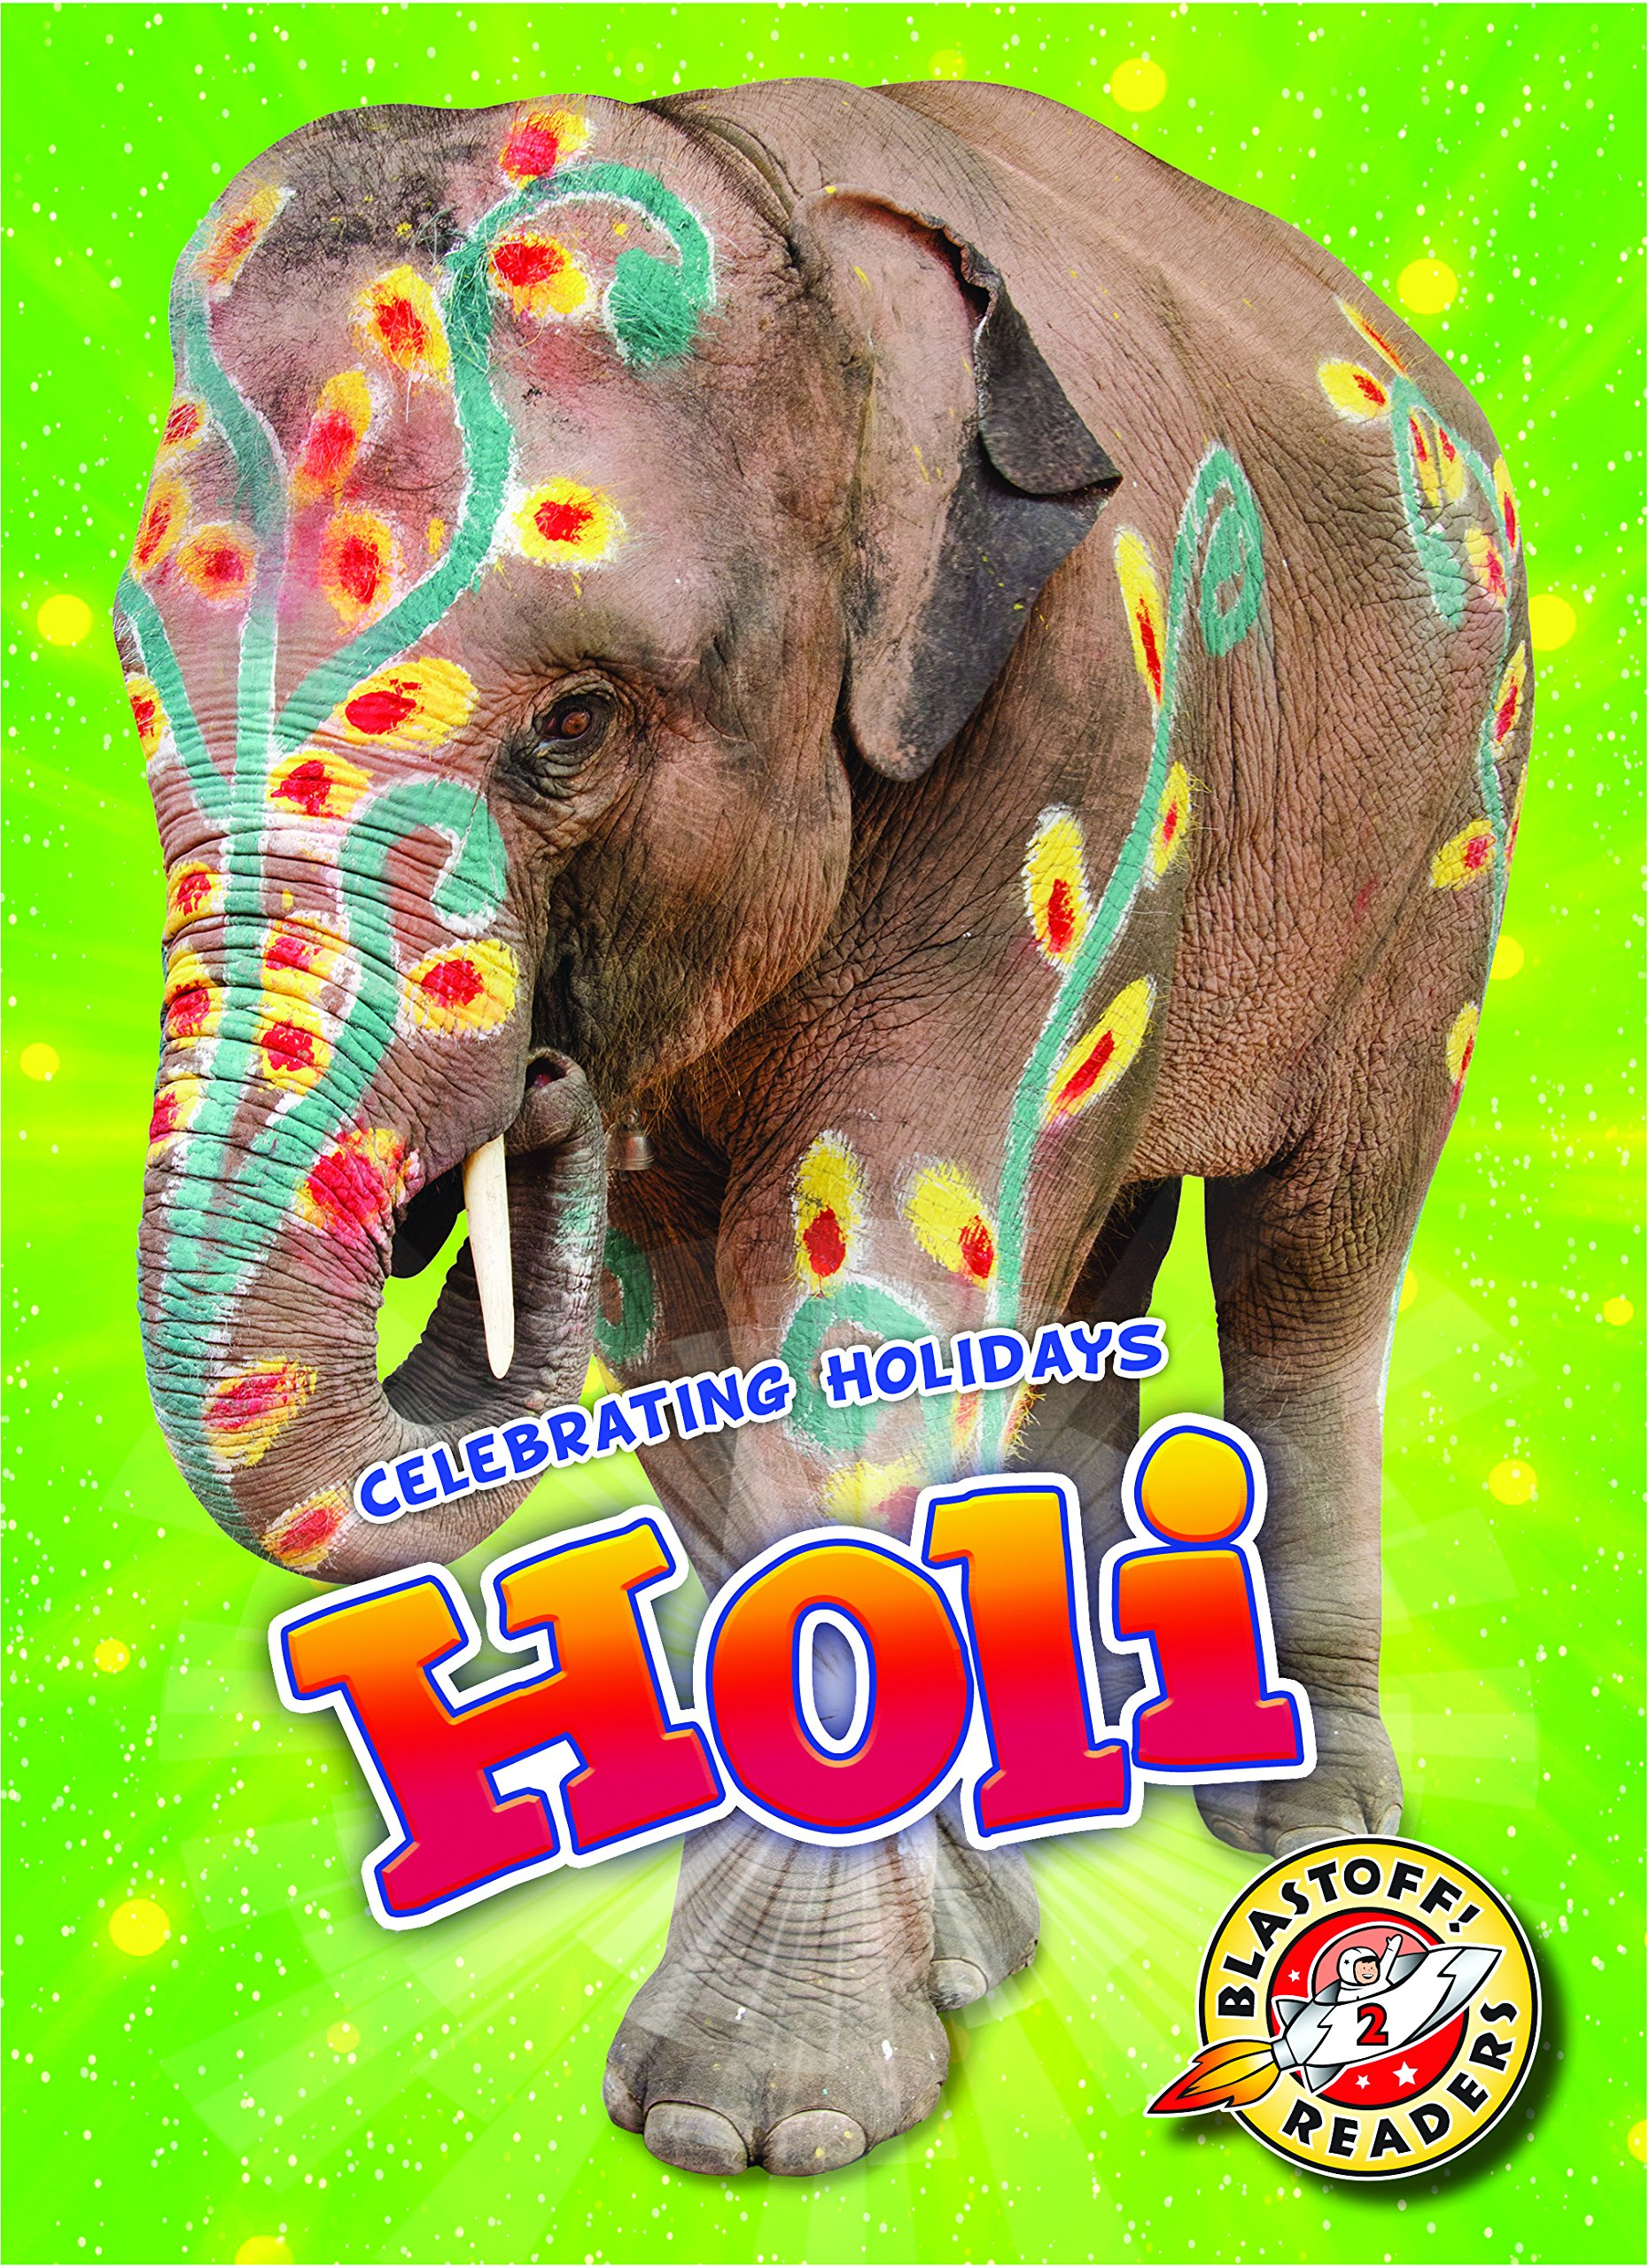 Holi (Celebrating Holidays)